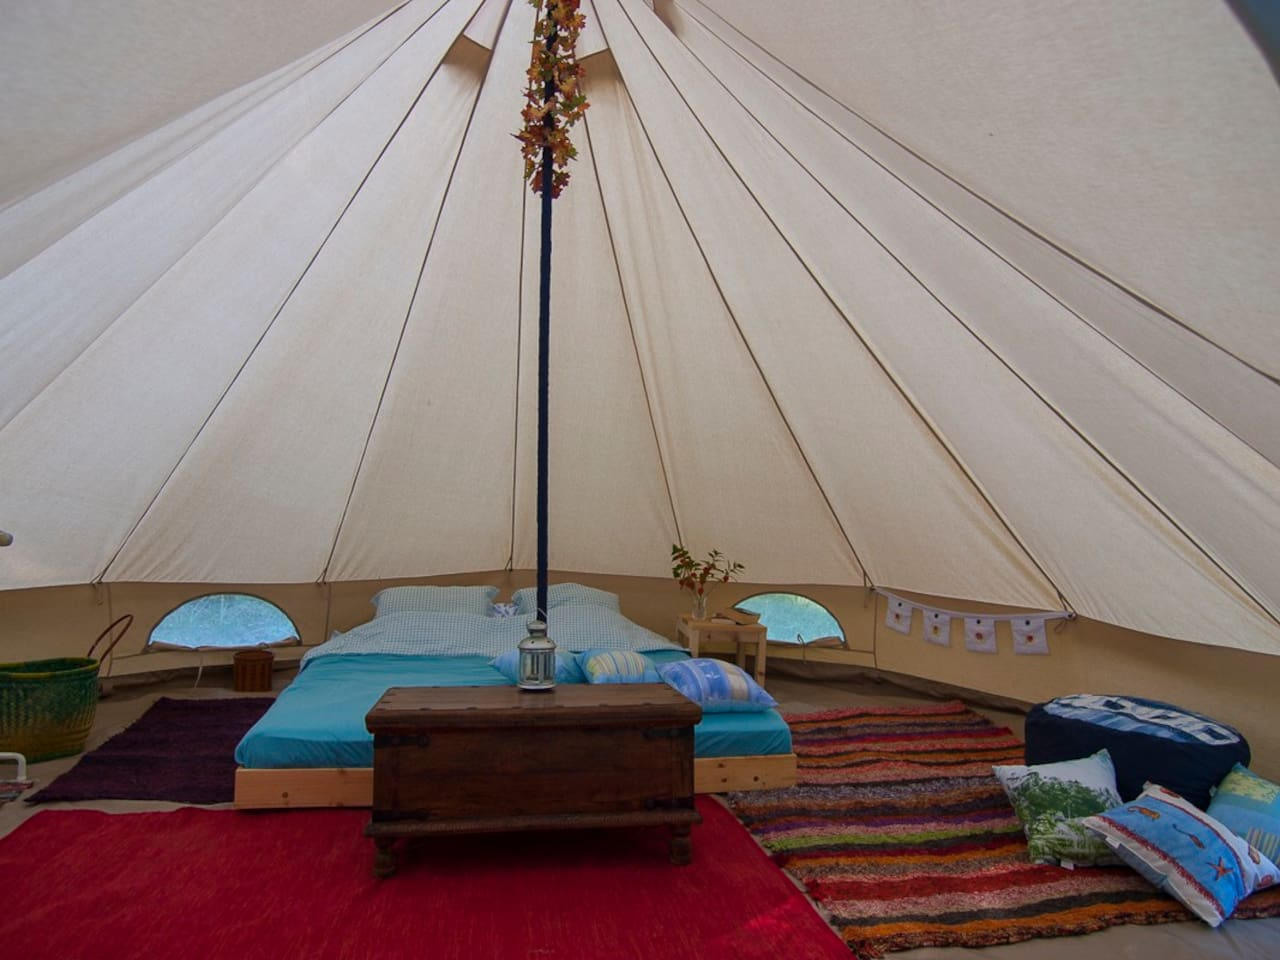 The spacious bell tents are fully furnished with everything you should need for a fun and relaxing holiday